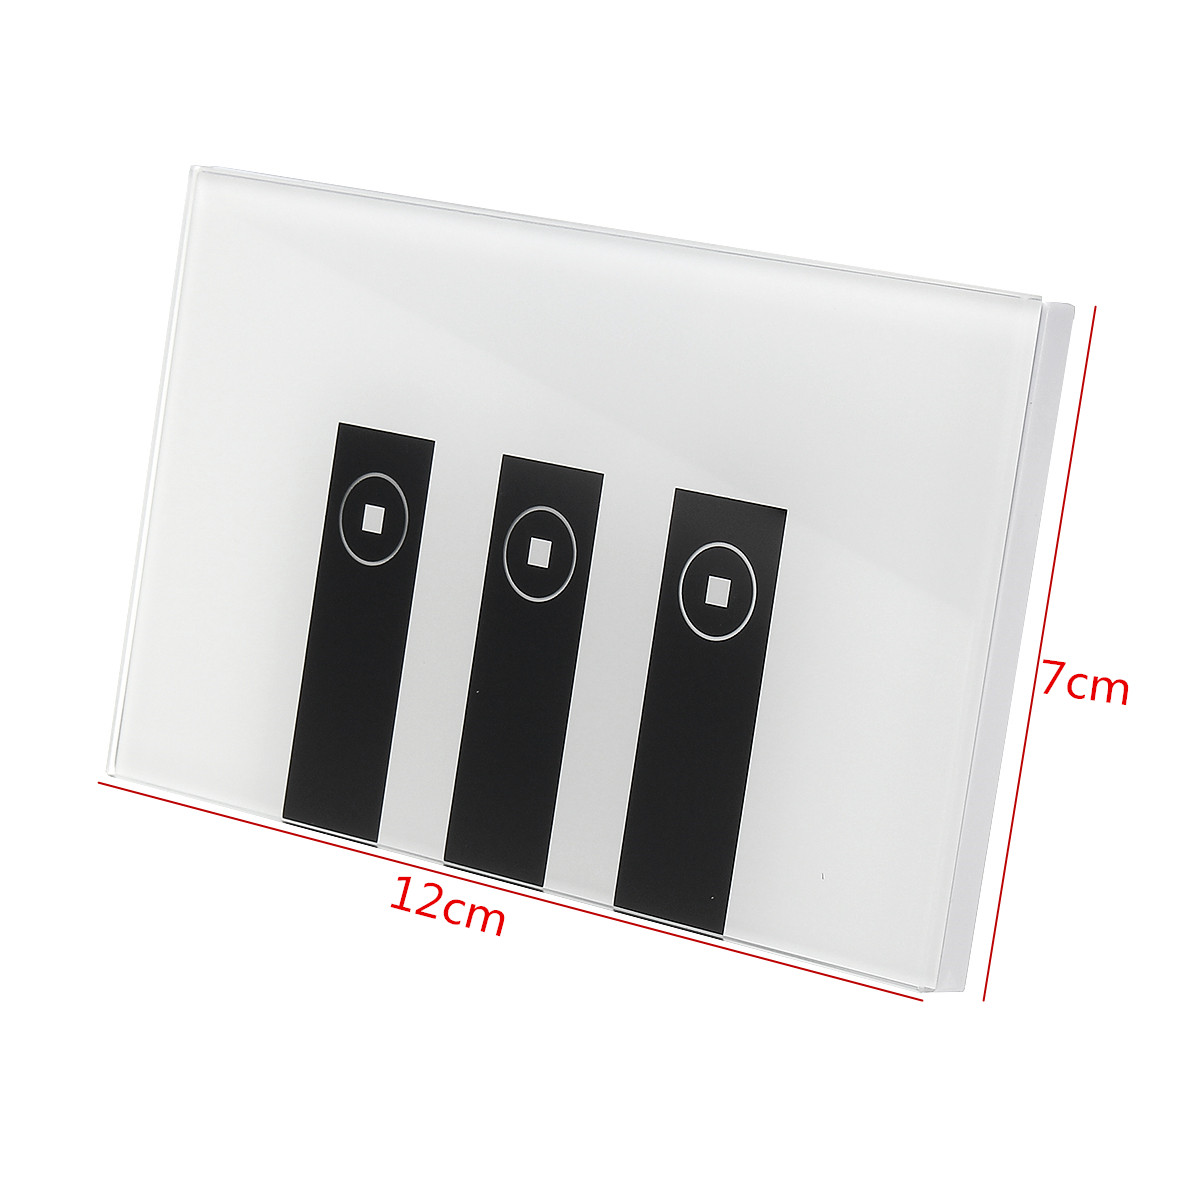 Excellway® US AC90-250V 10A Tempered Glass Smart Home Touch Sensor Switch Panel